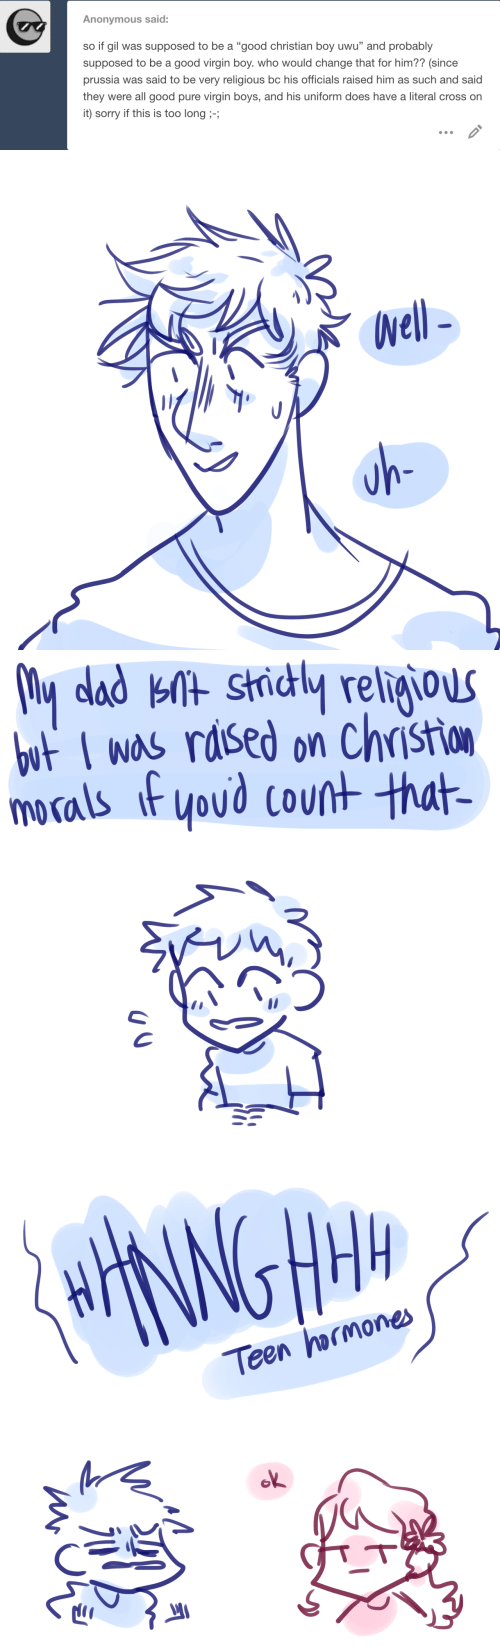 """pure: Anonymous said:  so if gil was supposed to be a """"good christian boy uwu"""" and probably  supposed to be a good virgin boy. who would change that for him?? (since  prussia was said to be very religious bc his officials raised him as such and said  they were all good pure virgin boys, and his uniform does have a literal cross on  it) sorry if this is too long ;-;   Well-  uh-   My dad knt strictly religious  but I was raised on Christion  morals if you'd count that-   HHANNGHM  Teen hormones  ok  miono"""